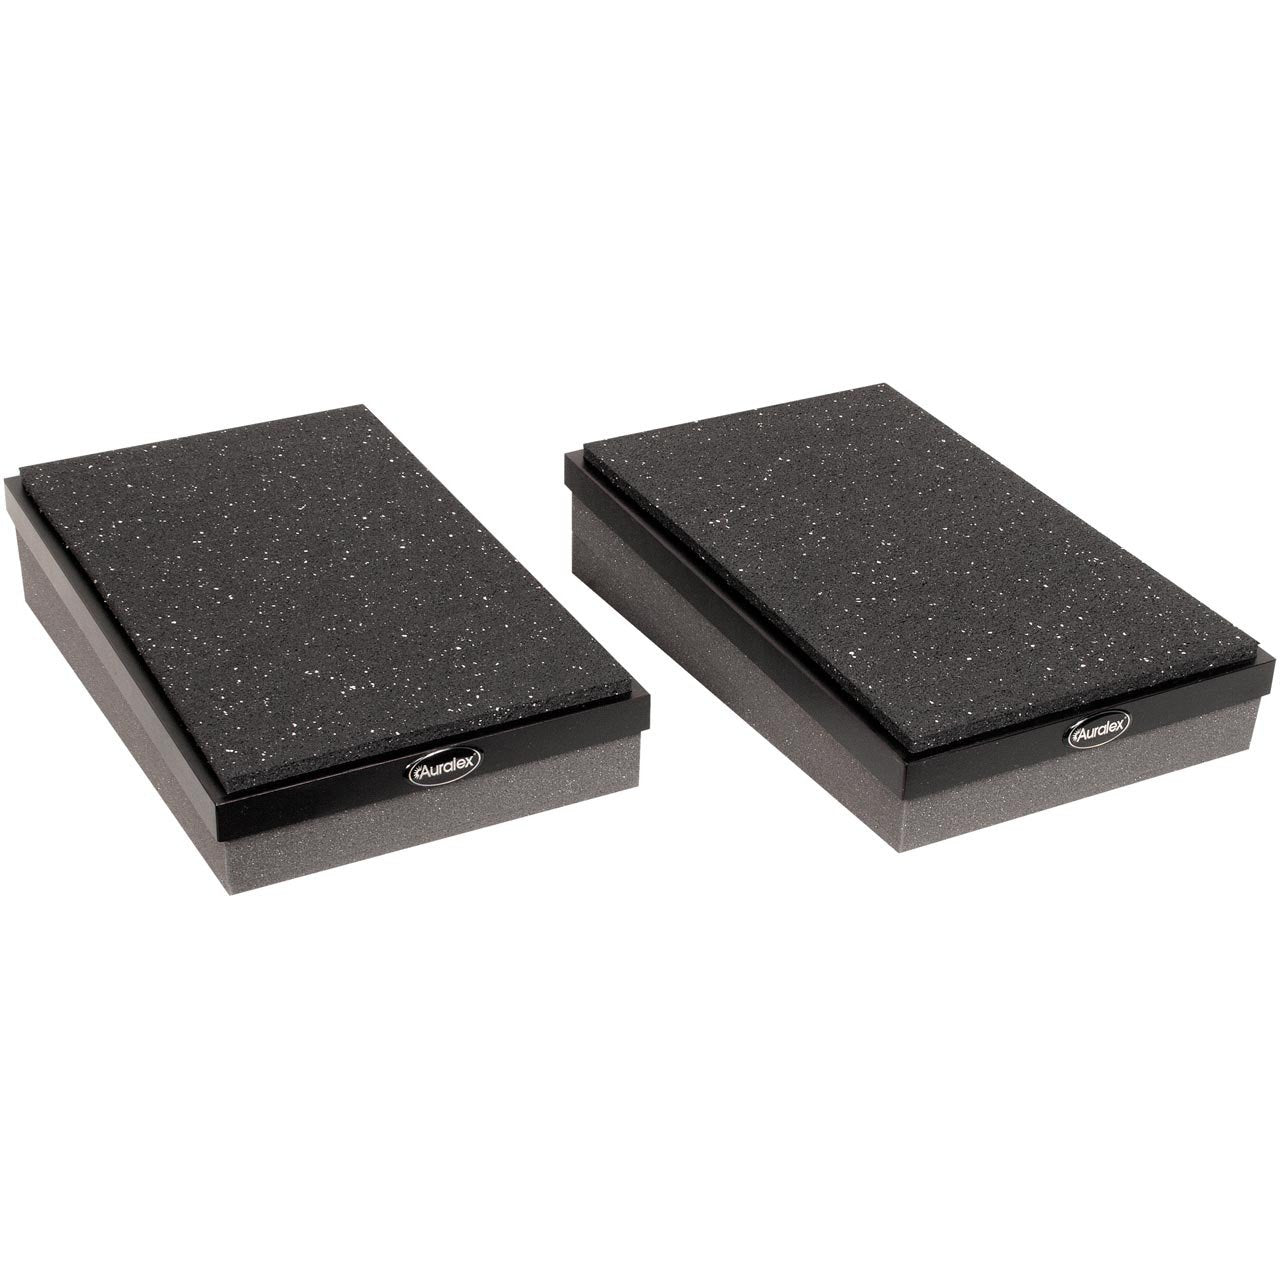 Monitor Isolation - Auralex ProPad Pro Speaker Isolation Pads